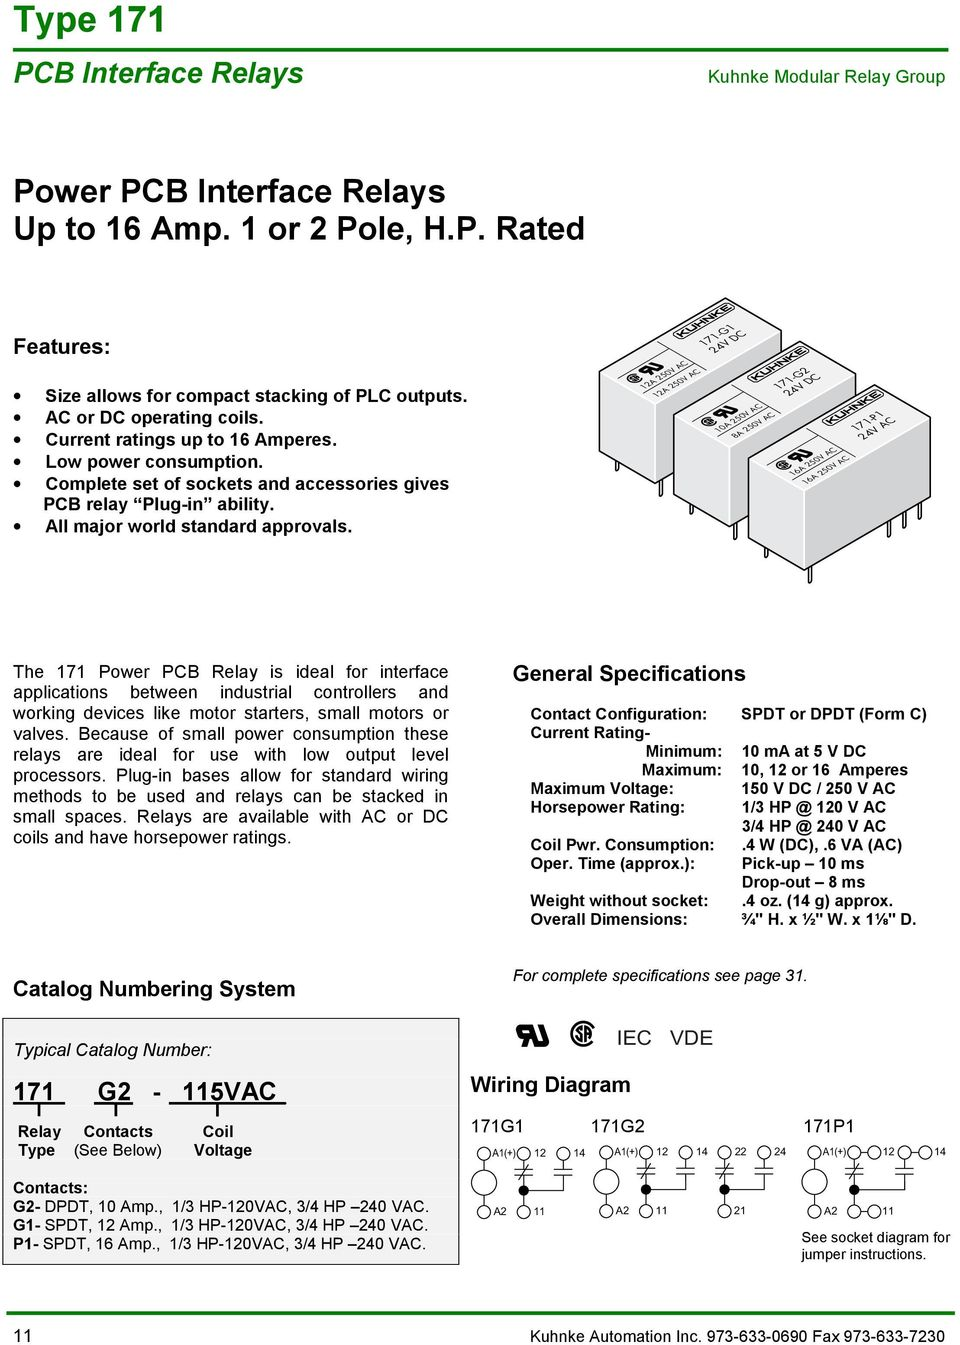 Kuhnke Technical Data Contact Details Pdf Dpdt Relay Schematic Symbol Safety Relays Te Connectivity A 0v Ac 7 G 4v Dc 8a